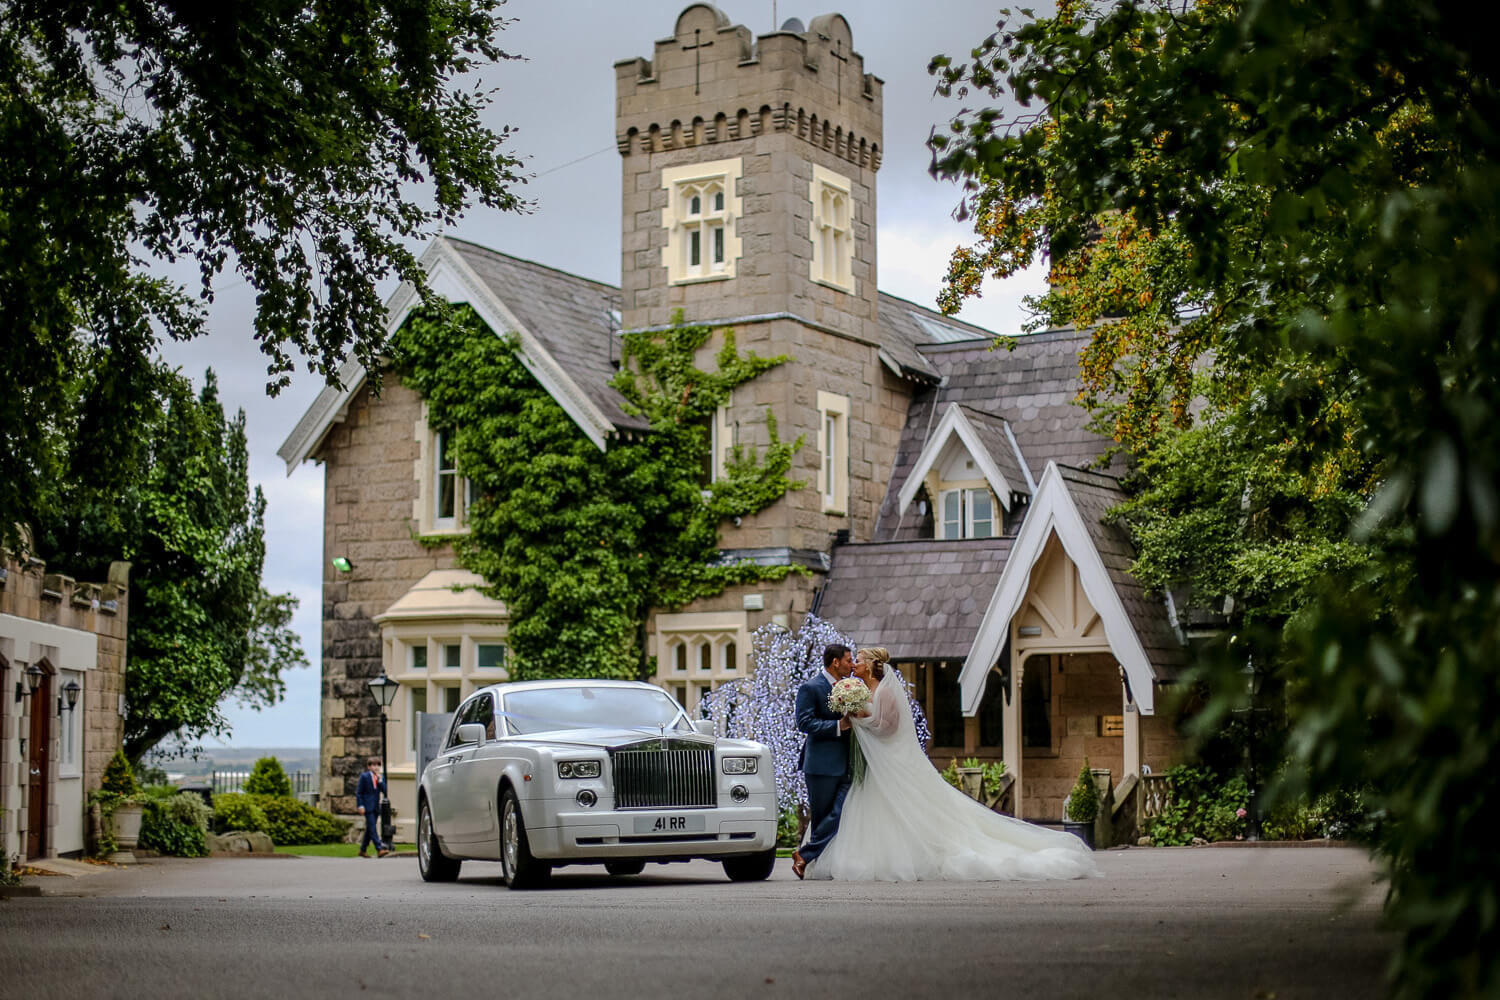 Bride and groom with white Rolls Royce in front of West Tower